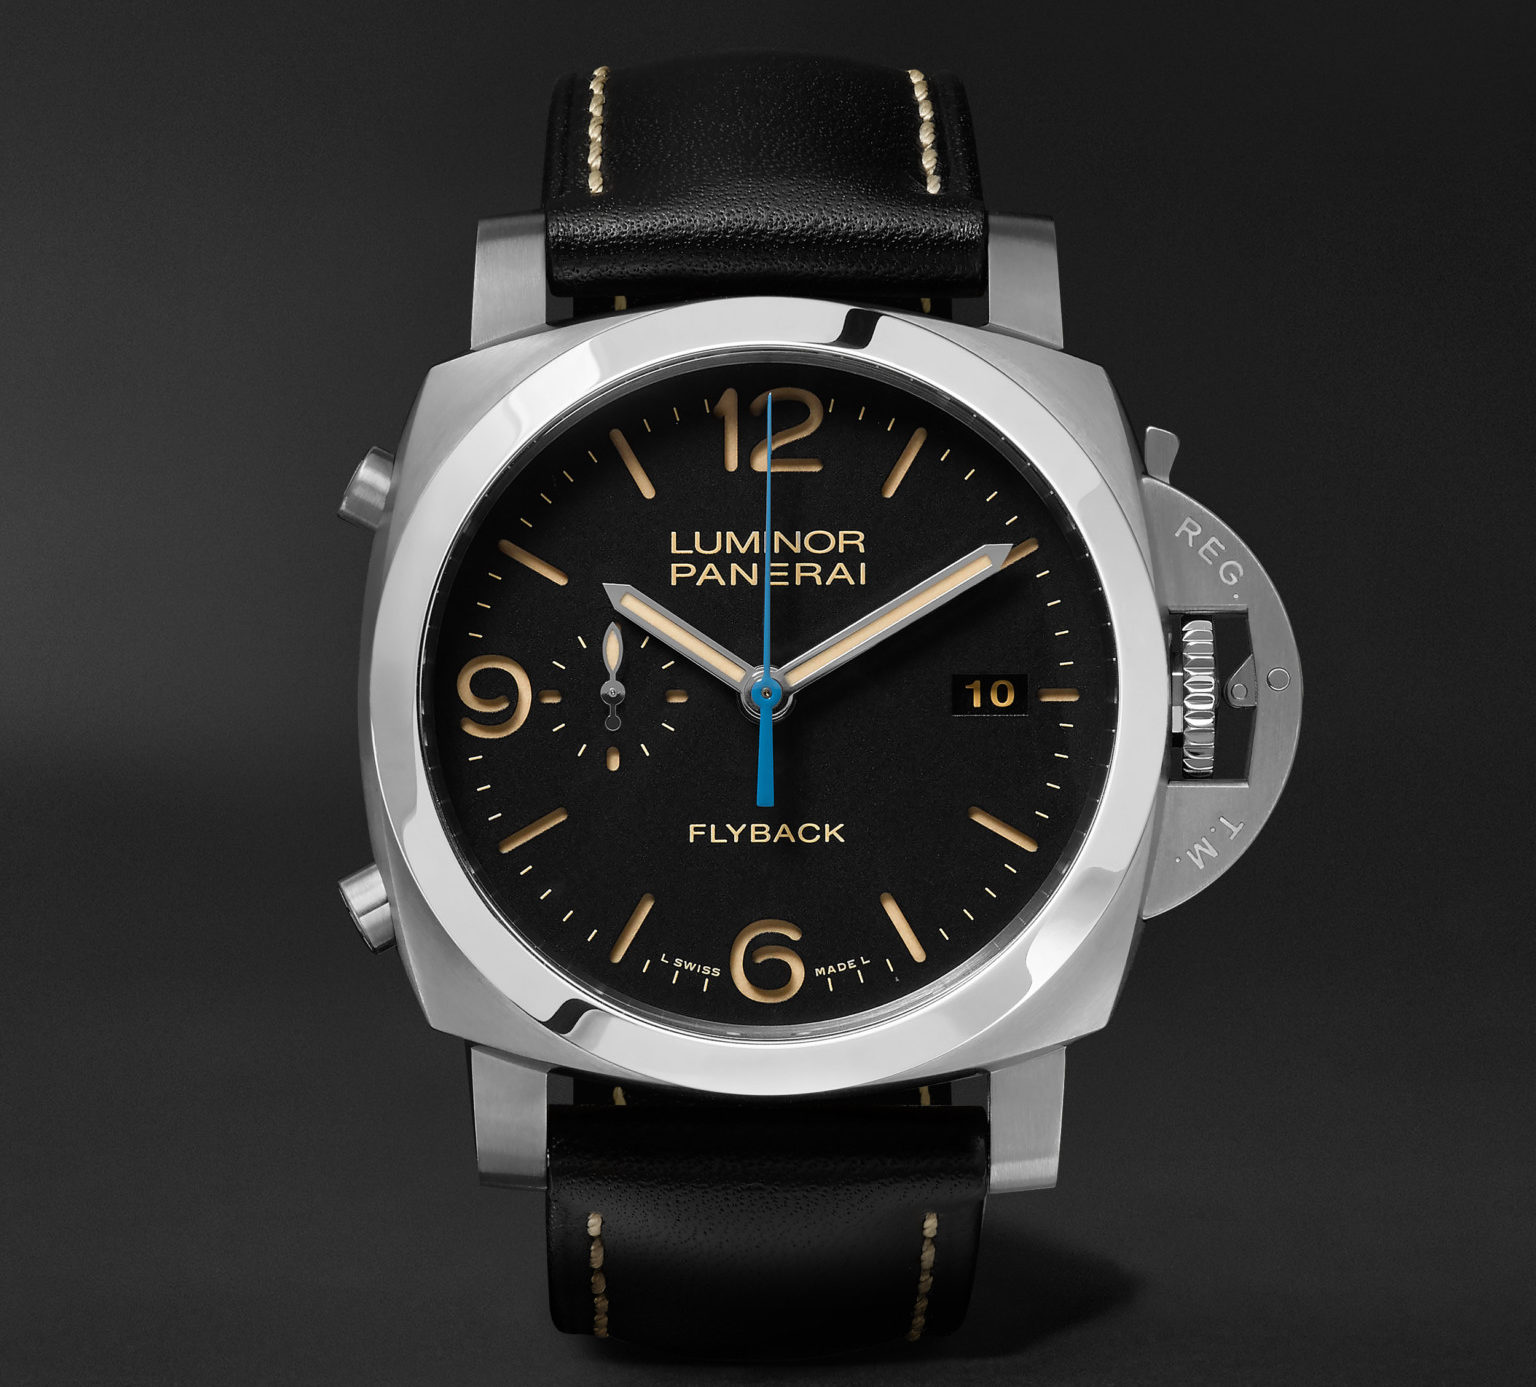 Panerai Luminor 1950 3 Days 44mm Automatic Flyback Chronograph Stainless Steel and Leather Watch